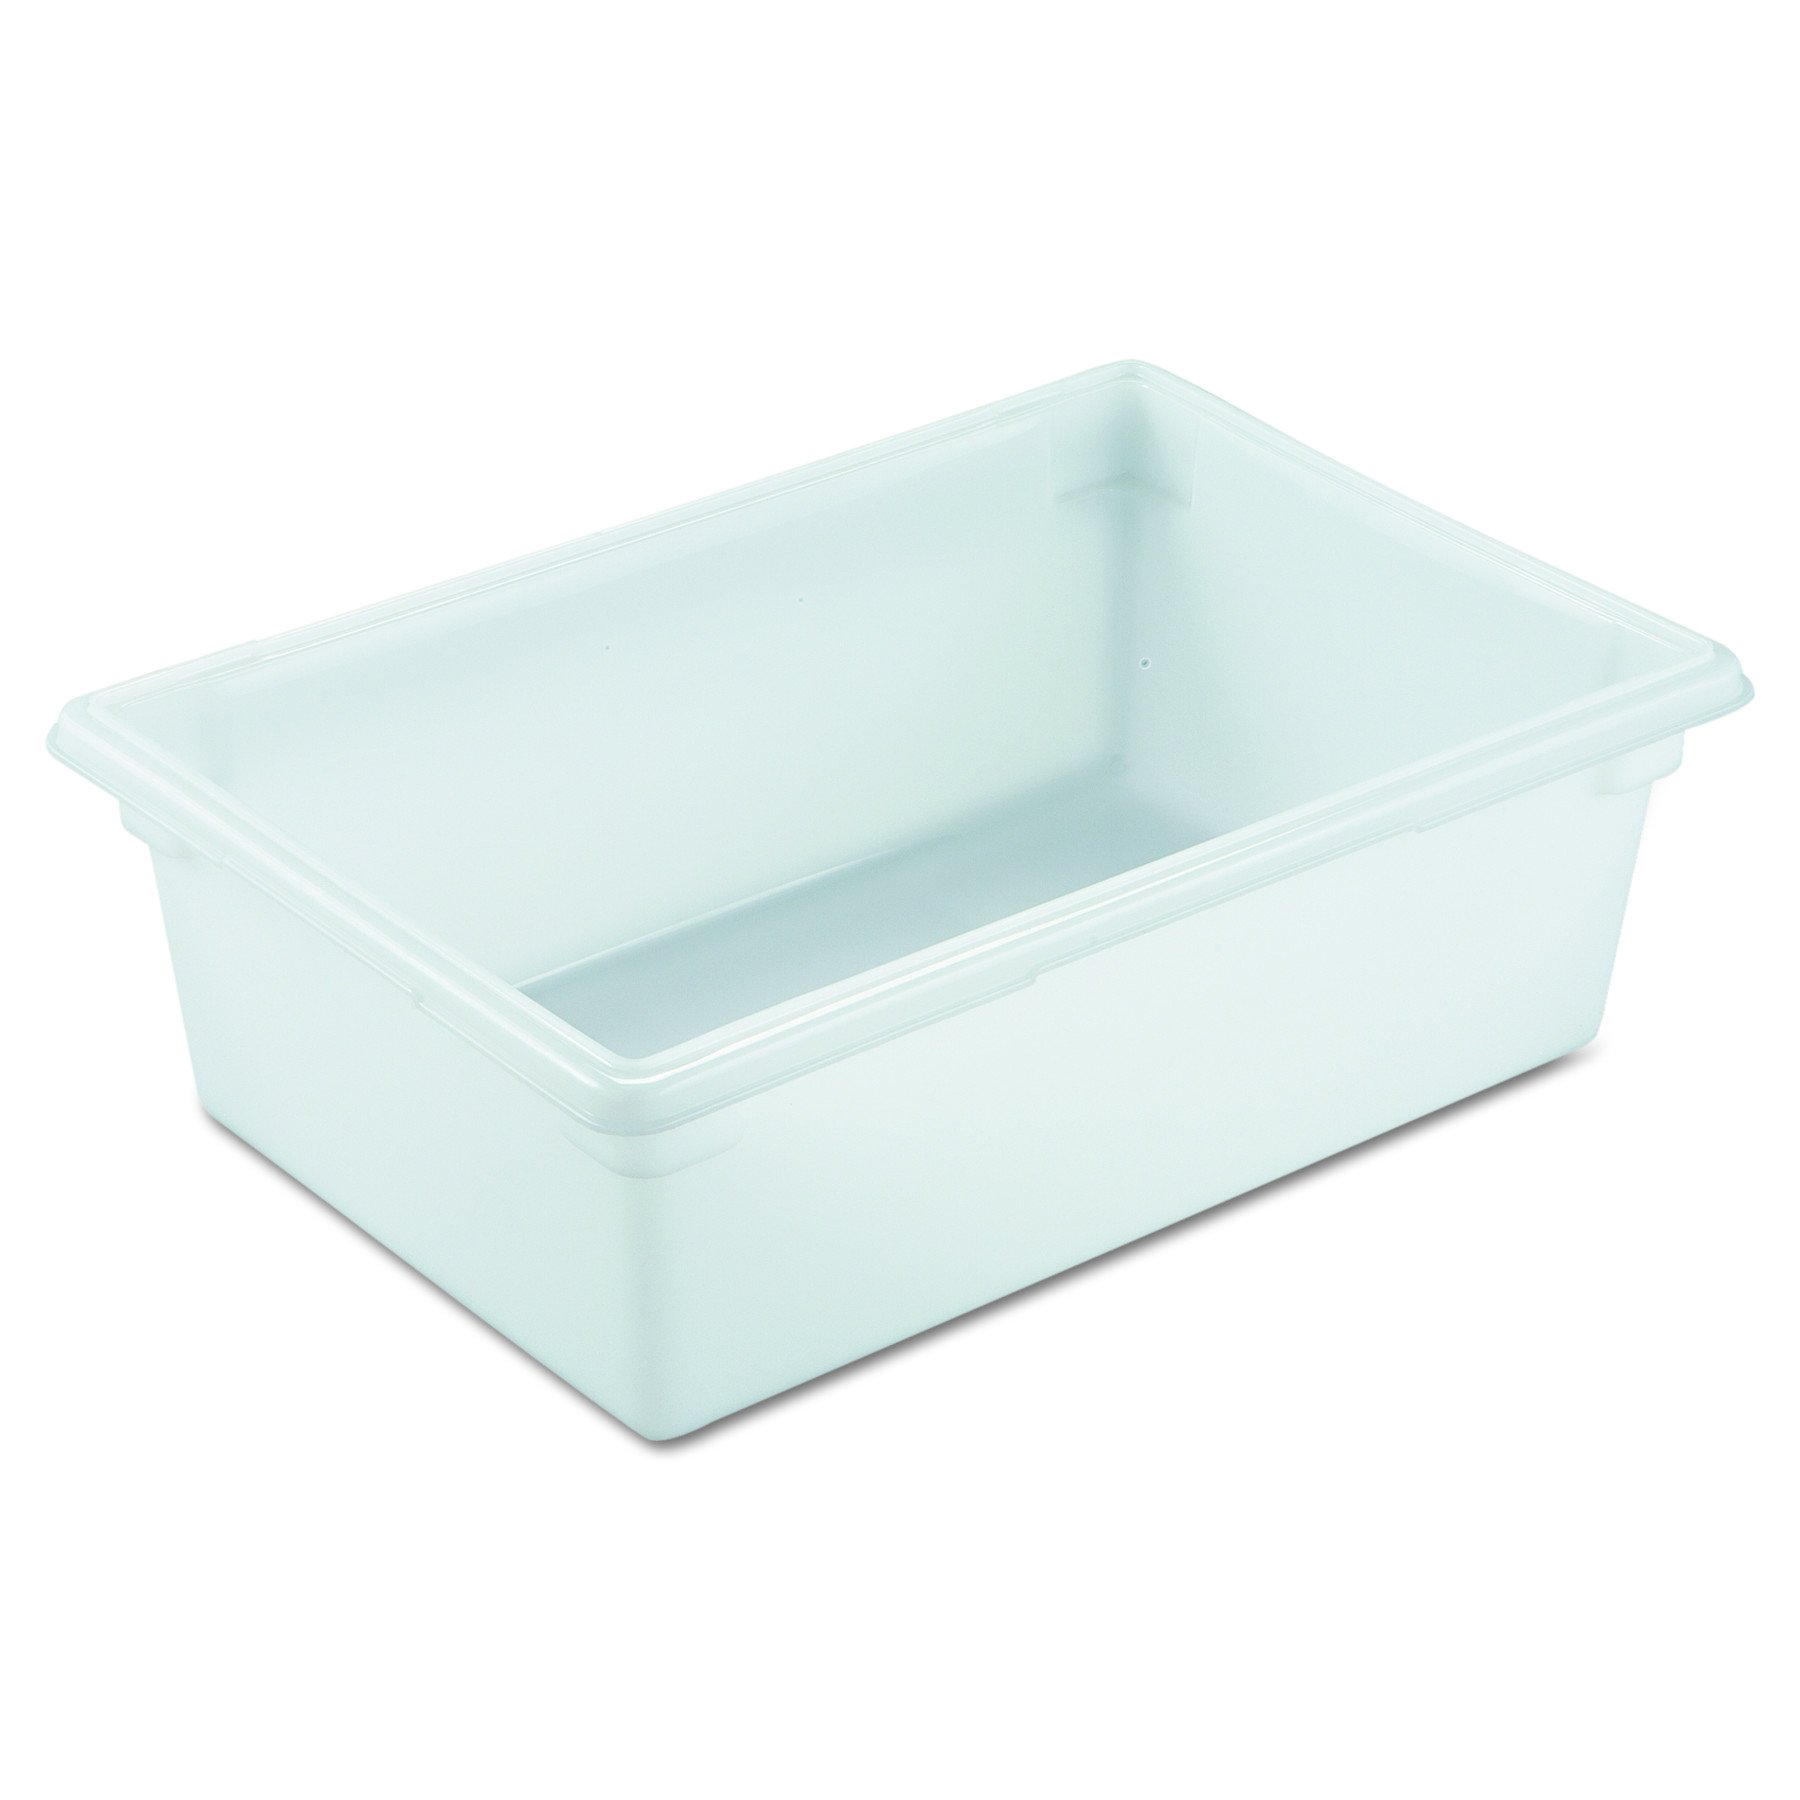 Rubbermaid Commercial Products Food Storage Box/Tote for Restaurant/Kitchen/Cafeteria, 12.5 Gallon, White (FG350000WHT) by Rubbermaid Commercial Products